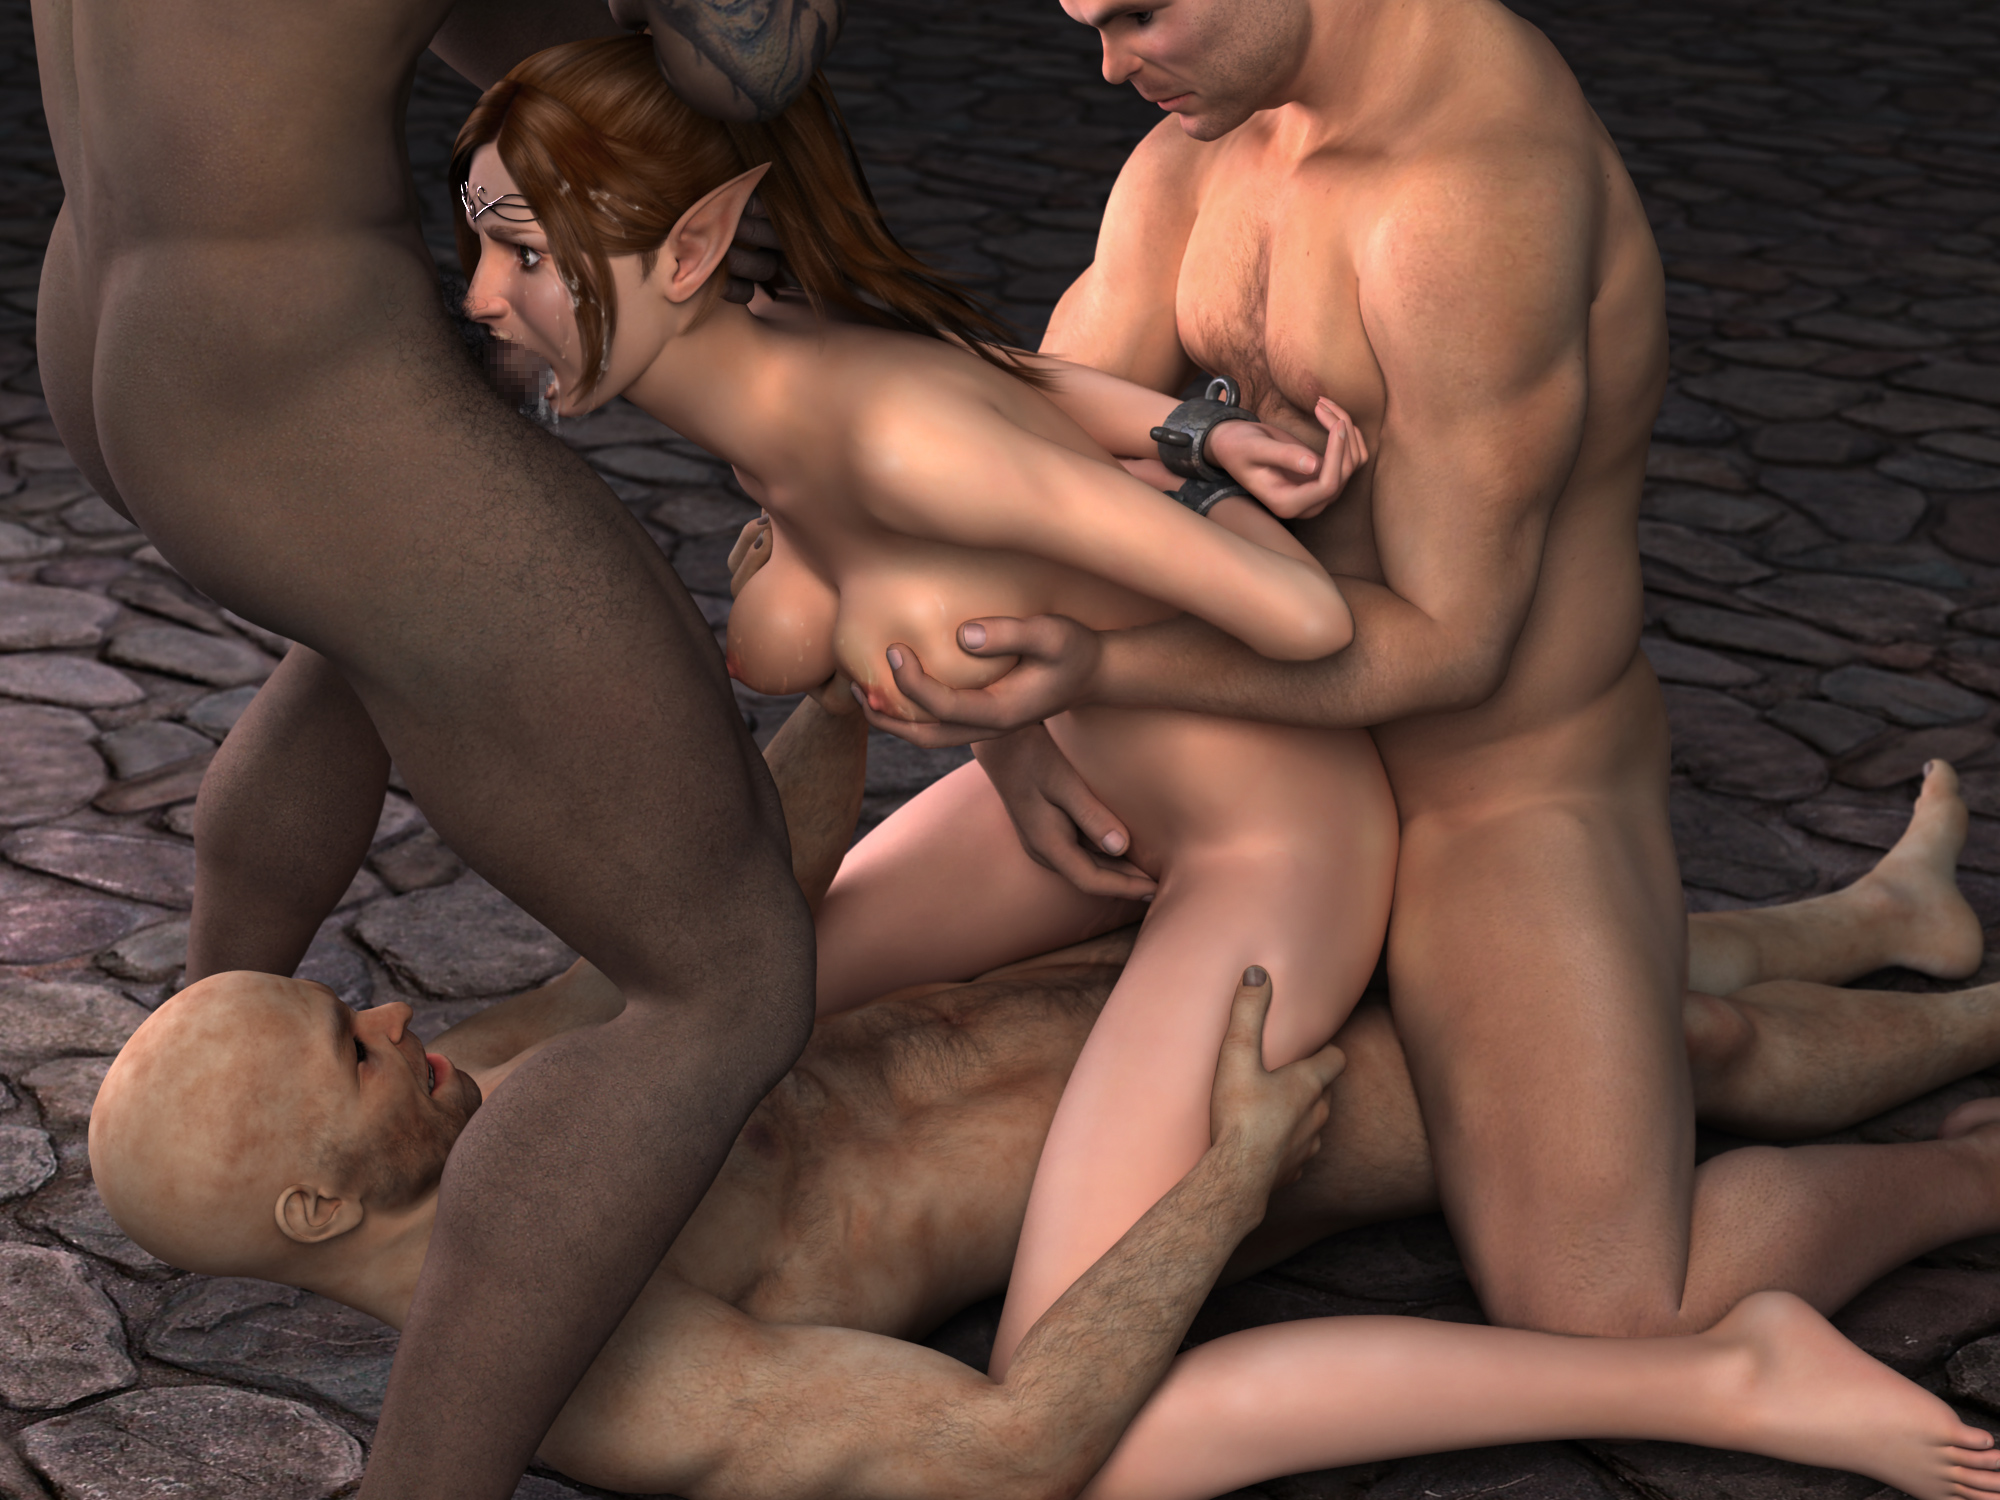 The sims 3 xxx hardcore pictures sex comic